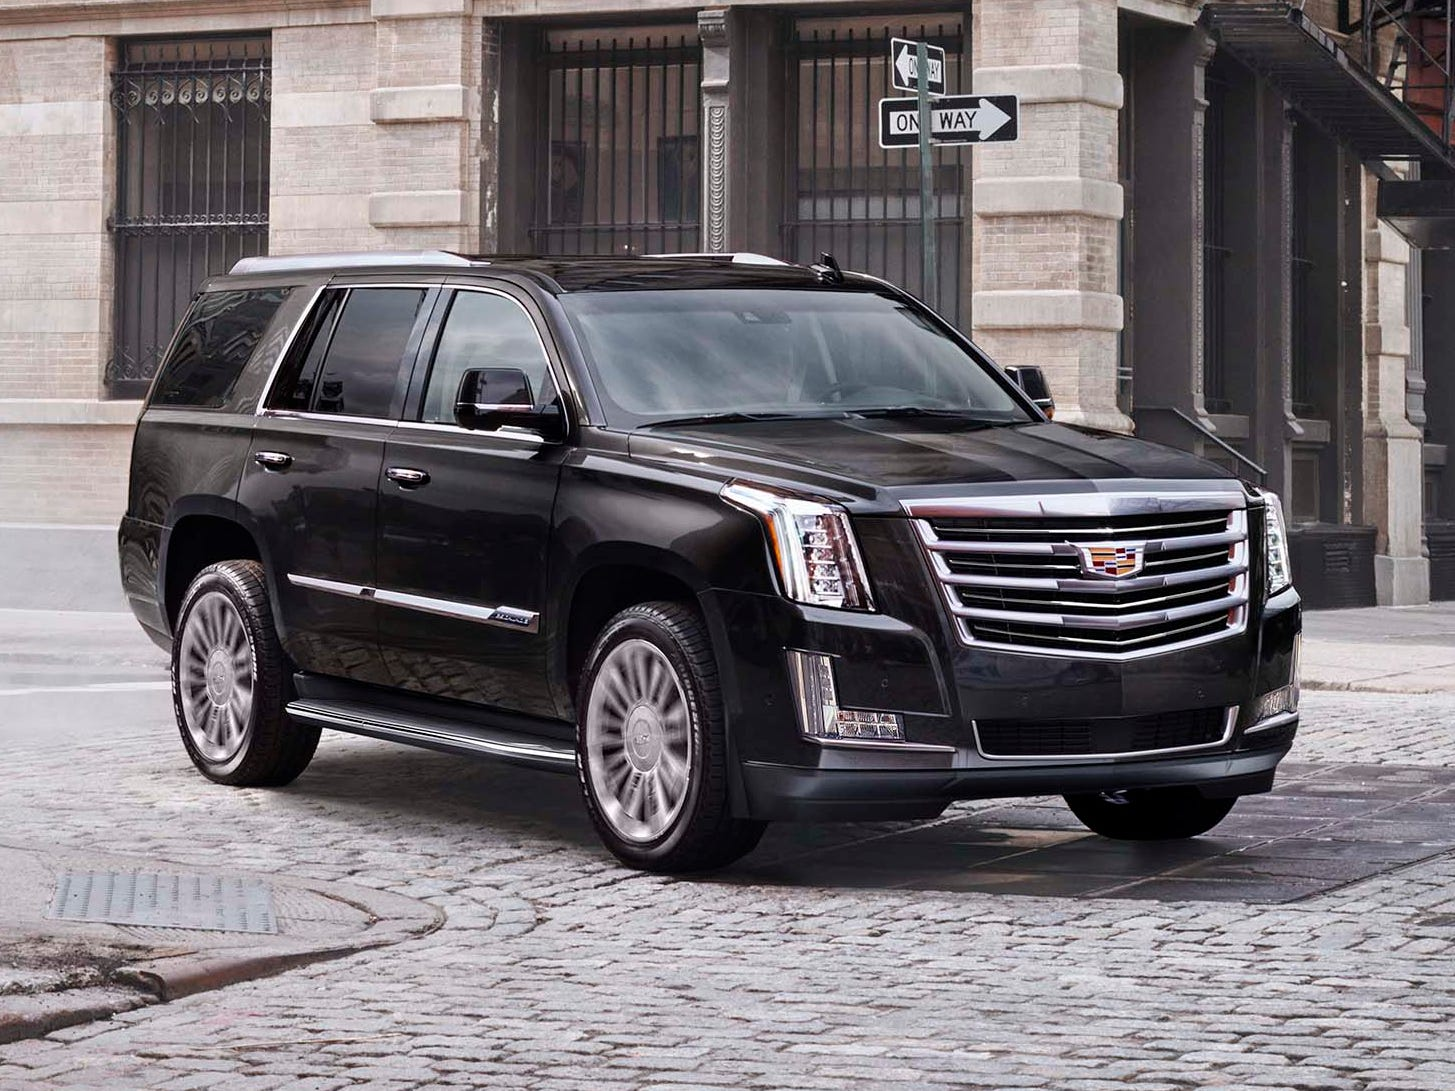 The Cadillac Escalade has grown little in its 20 years - keeping its general 17-foot long by 6-foot-tall dimensions. But its big V-8 is 65 percent more powerful with 52 percent better fuel economy.